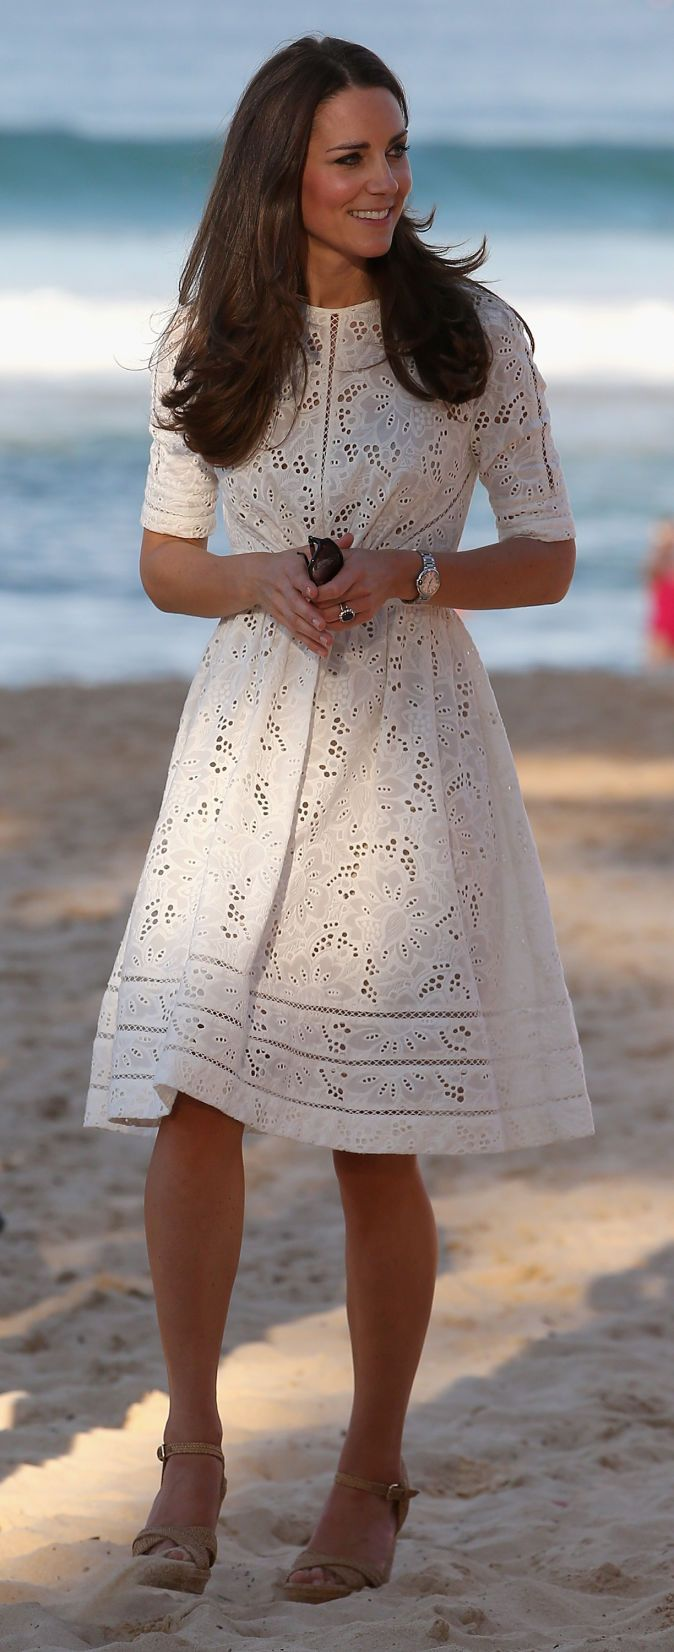 Kate Middleton Wears Dainty Zimmermann for a Nice Beach Stroll | Fashionista